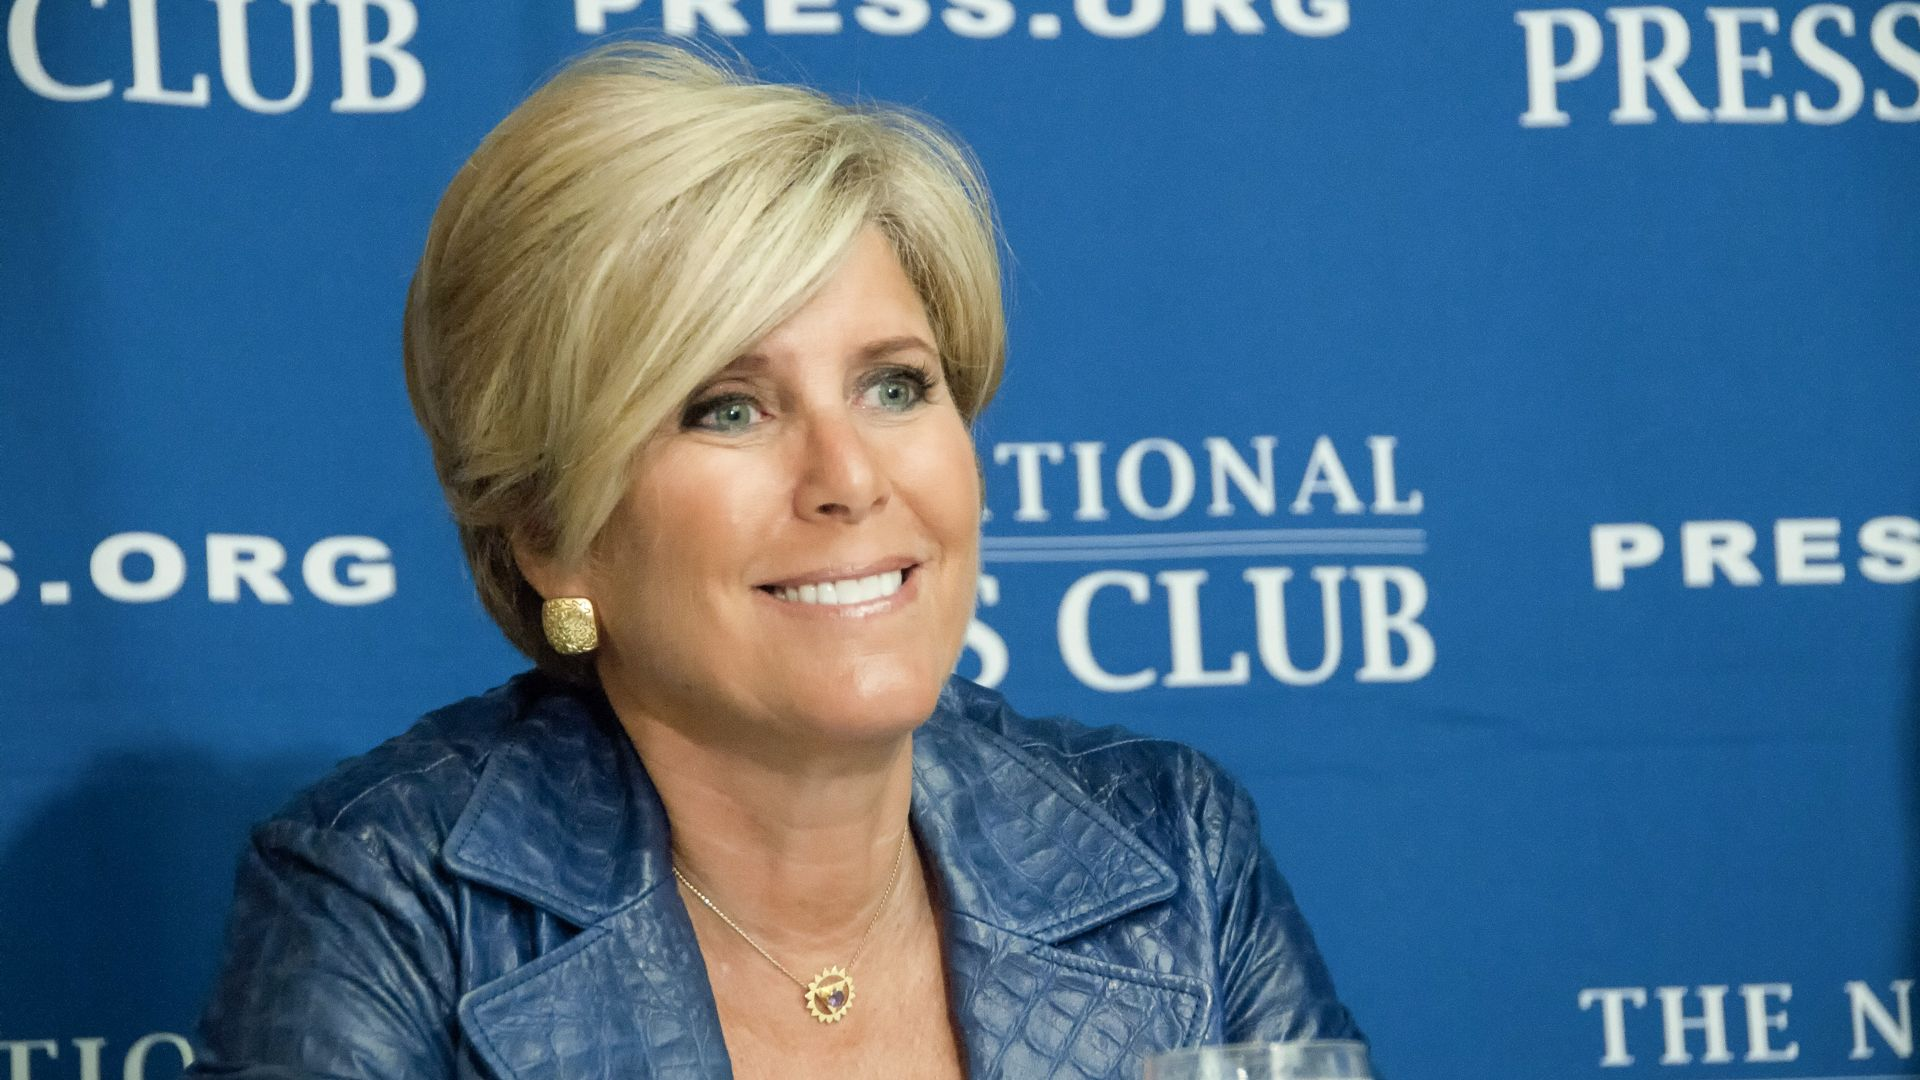 WASHINGTON, DC - JANUARY 12: Financial adviser, author, and TV personality Suze Orman speaks at a press conference at the National Press Club, January 12, 2012, in Washington, DC.